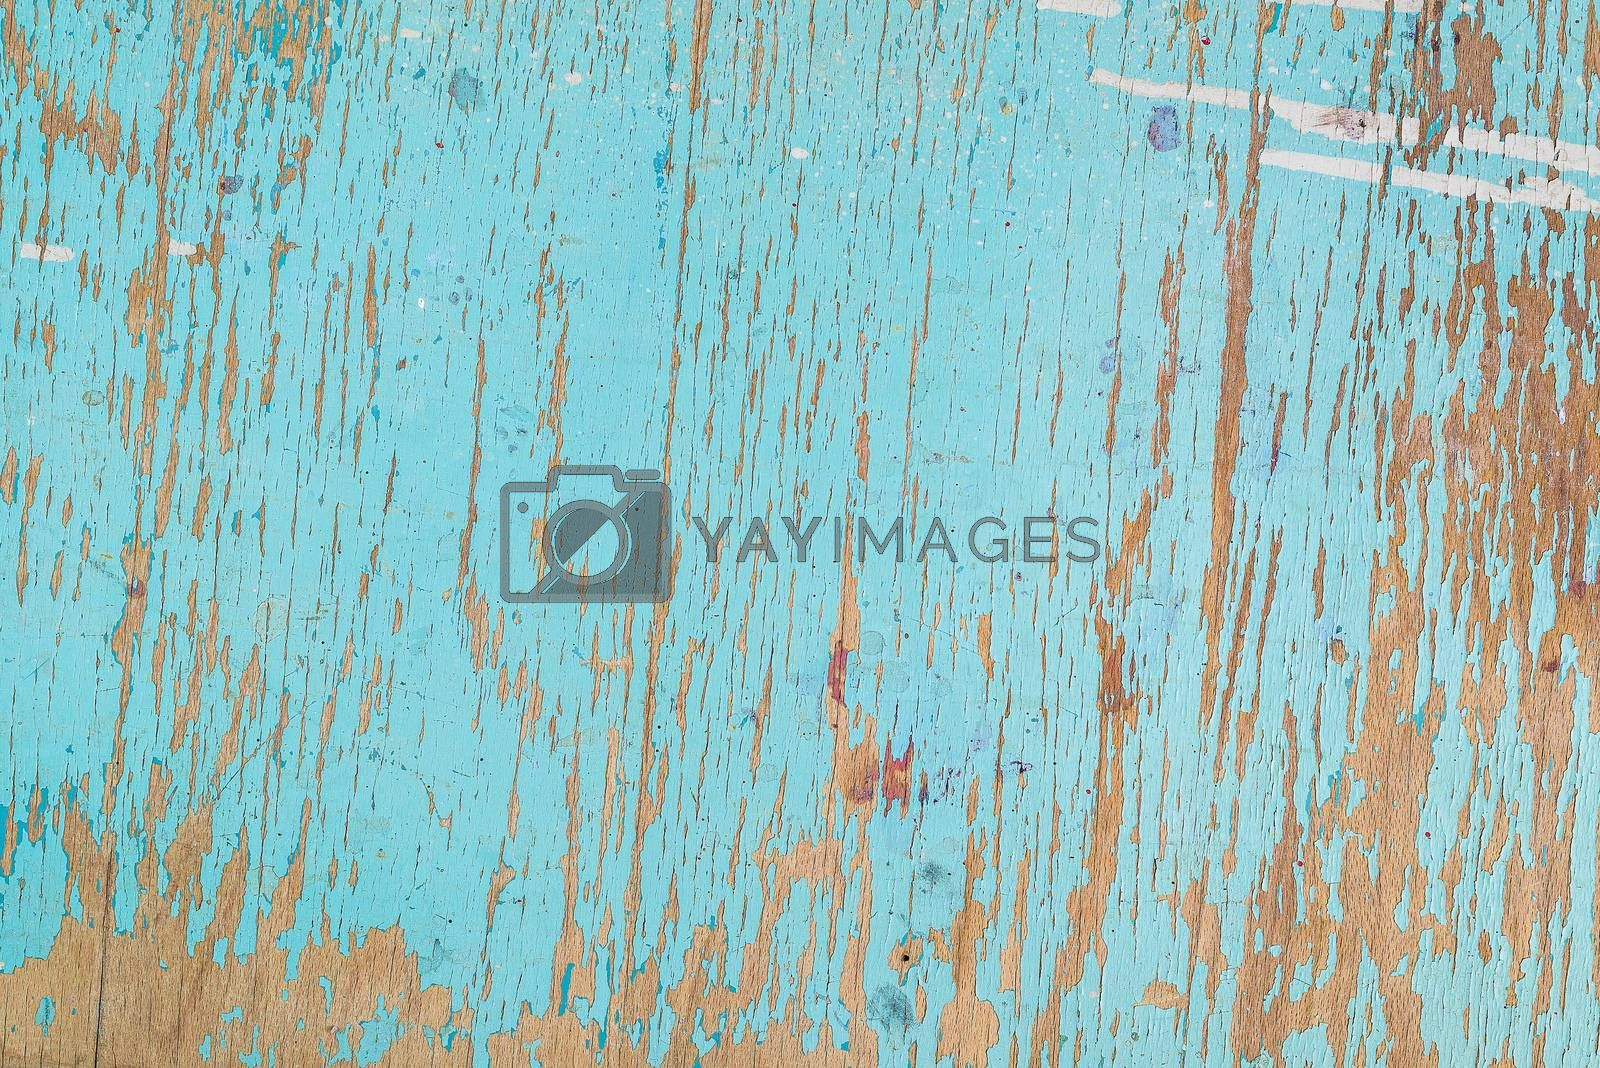 Rustic wooden texture, old wood background with blue peeling paint